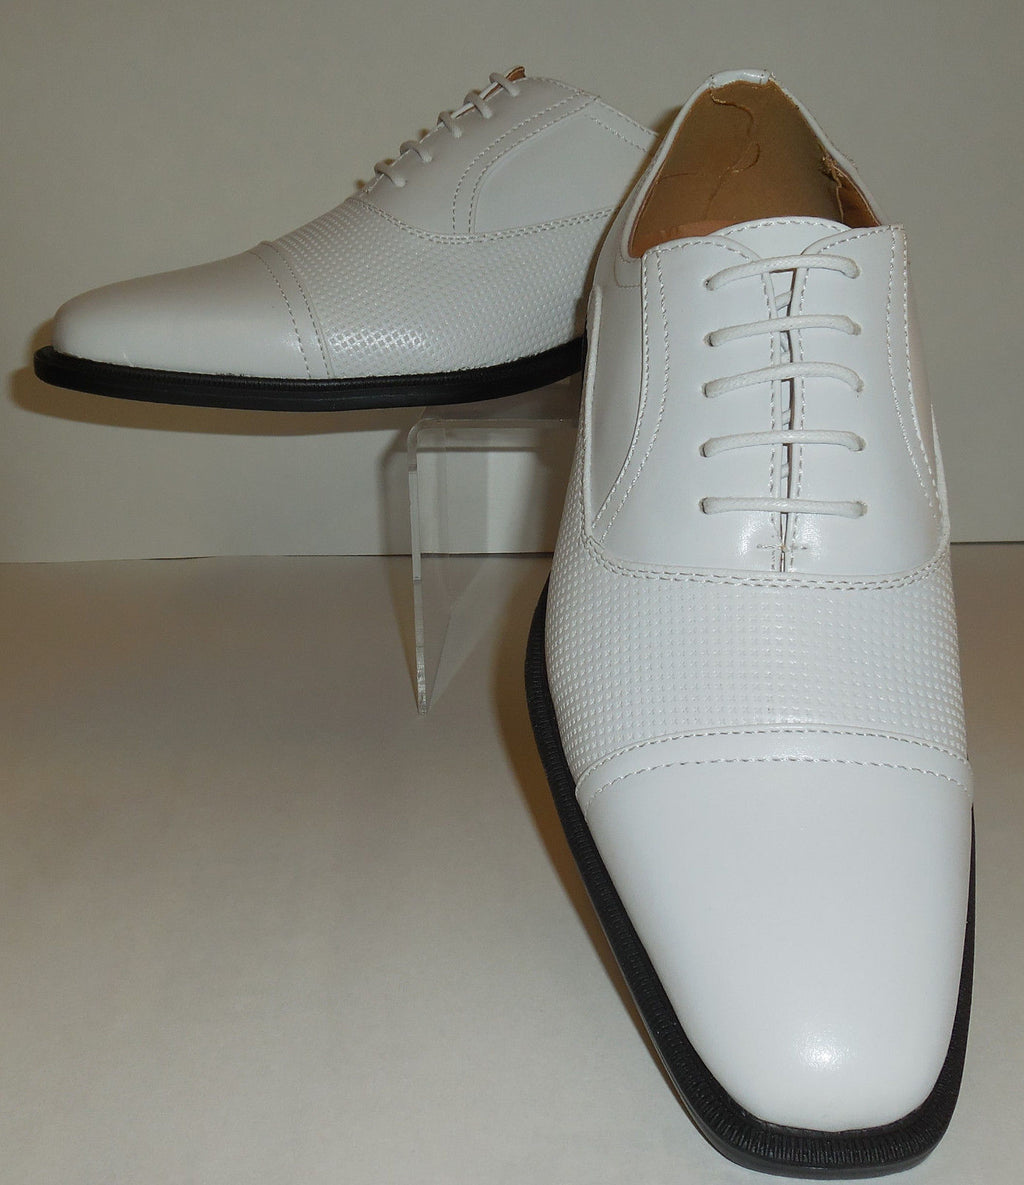 Mens Chic White Oxford Dress Shoes with Cool Perforation Antonio Cerrelli 6528 - Nader Fashion Las Vegas